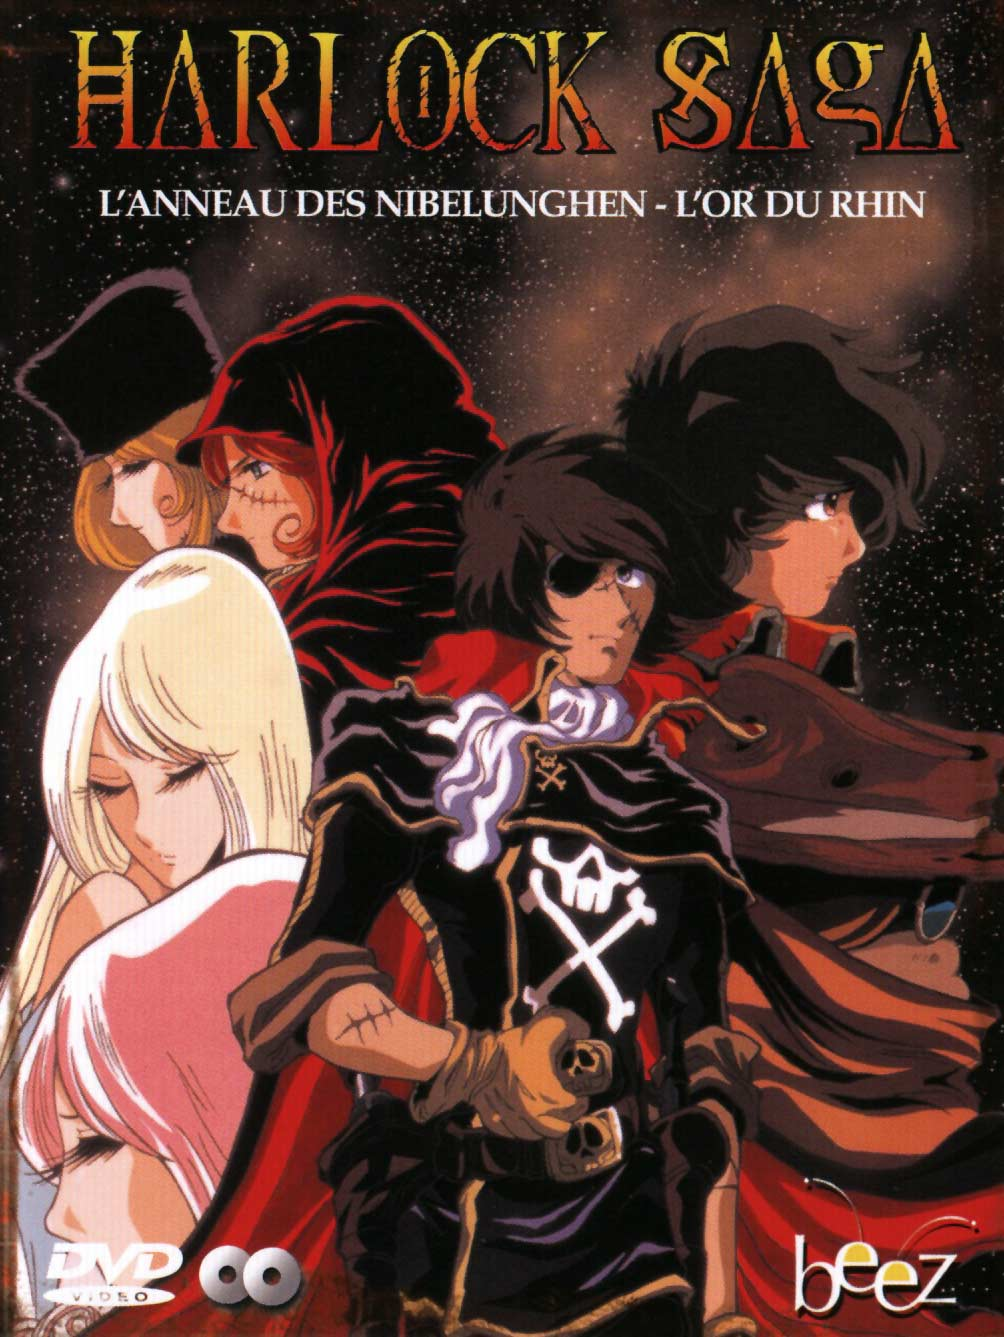 Harlock Saga (Albator)